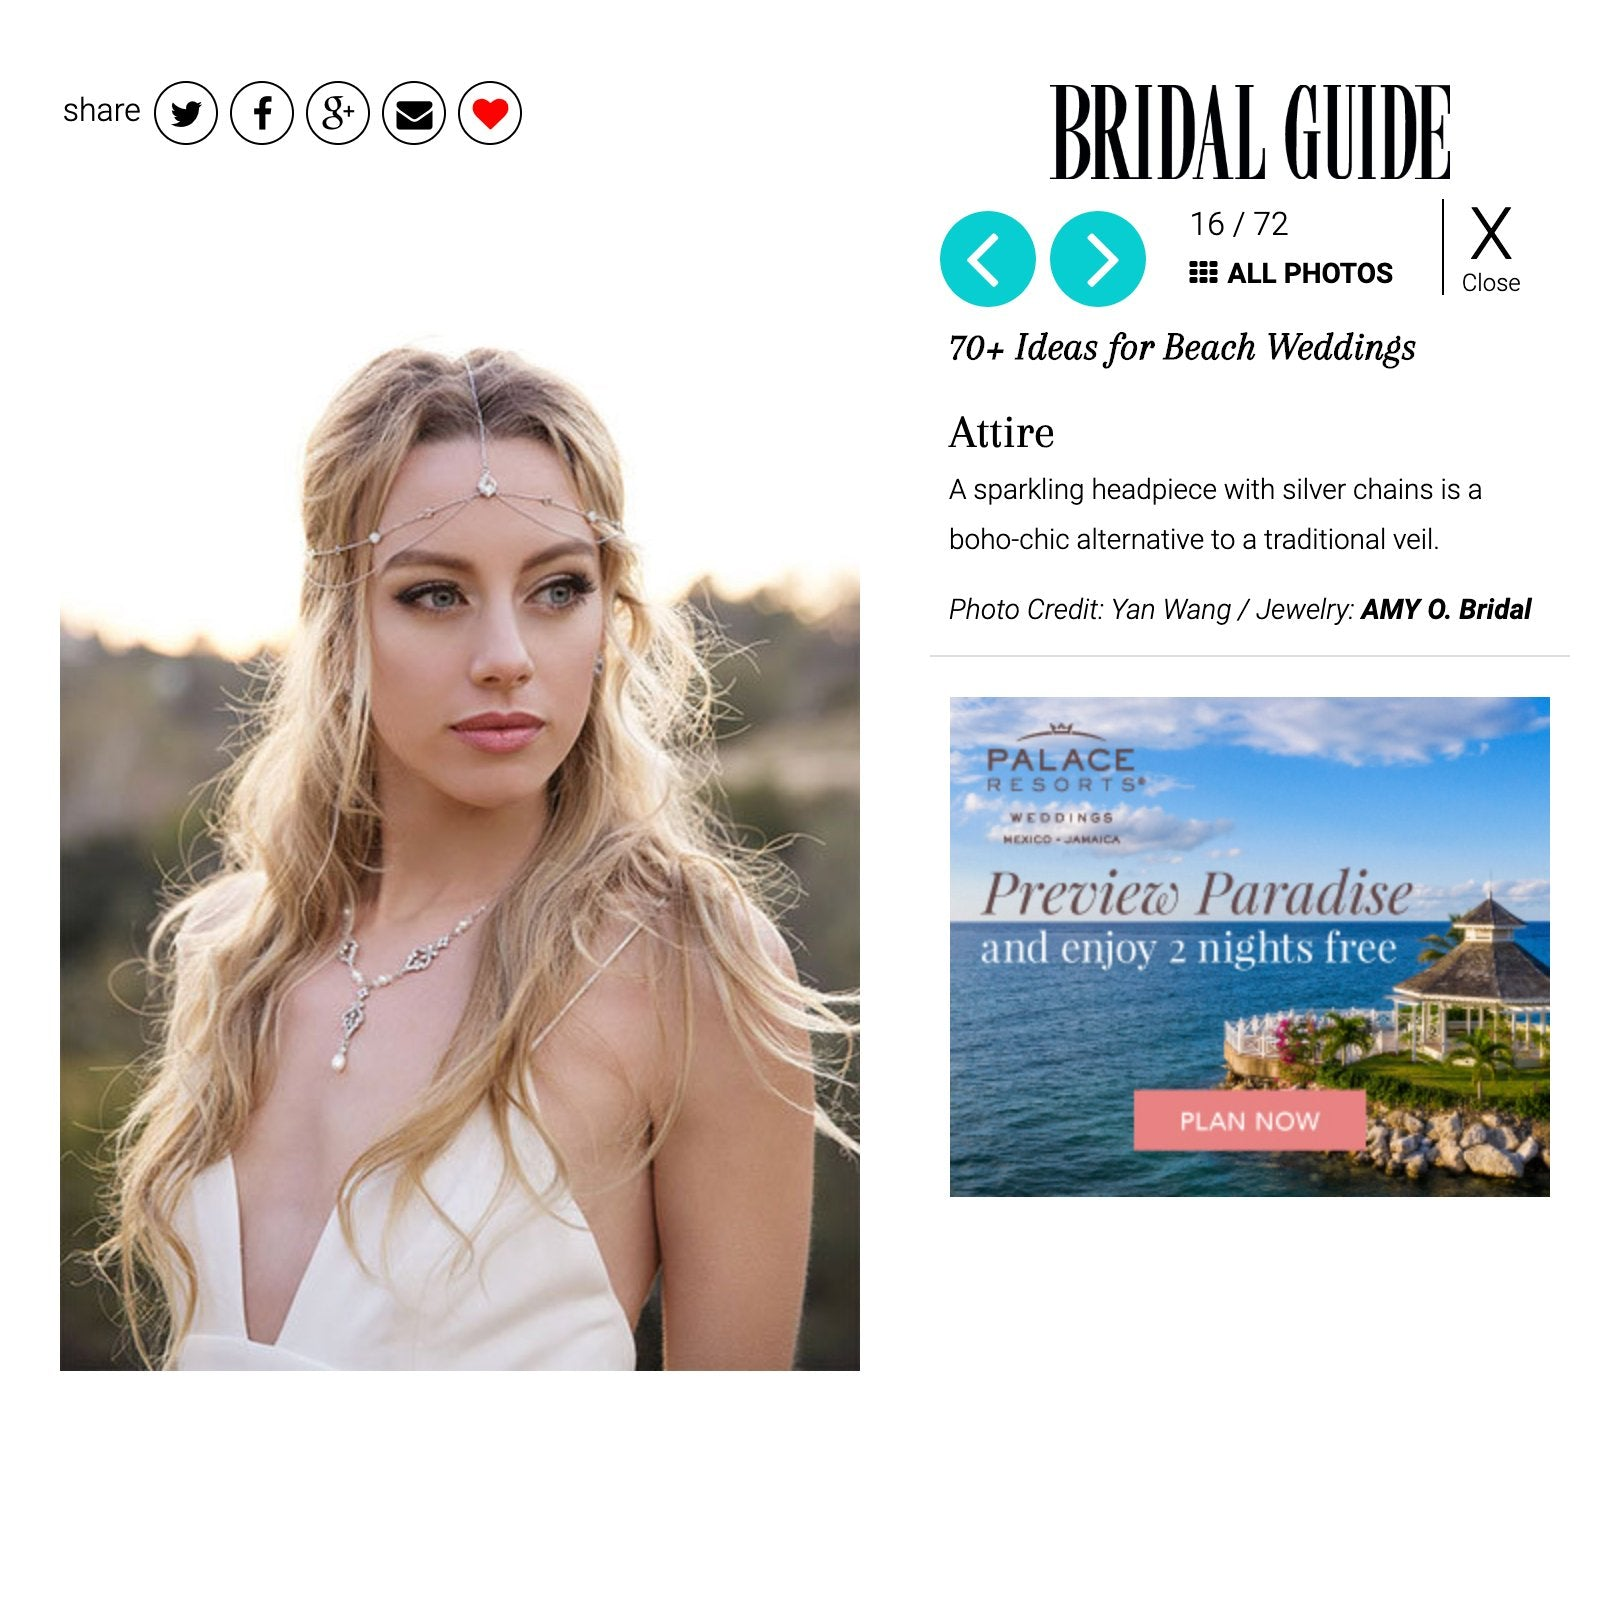 caption: Featured on Bridal Guide